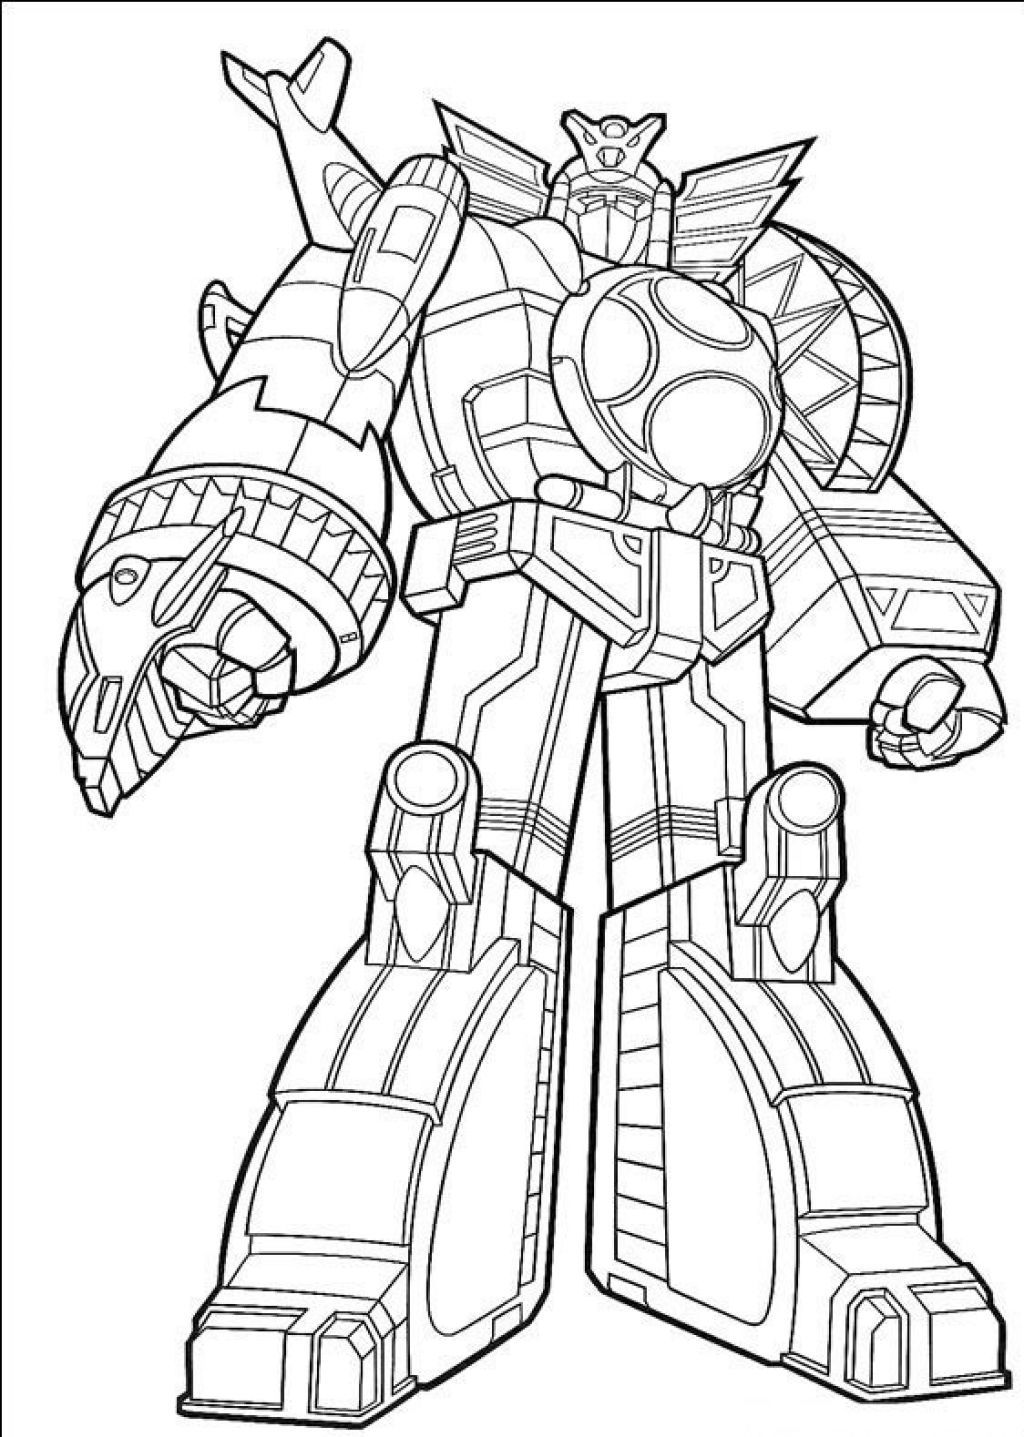 Coloring pages power rangers free - Power Ranger Coloring Book Good Free Printable Coloring Pages Daecaeabbaadd